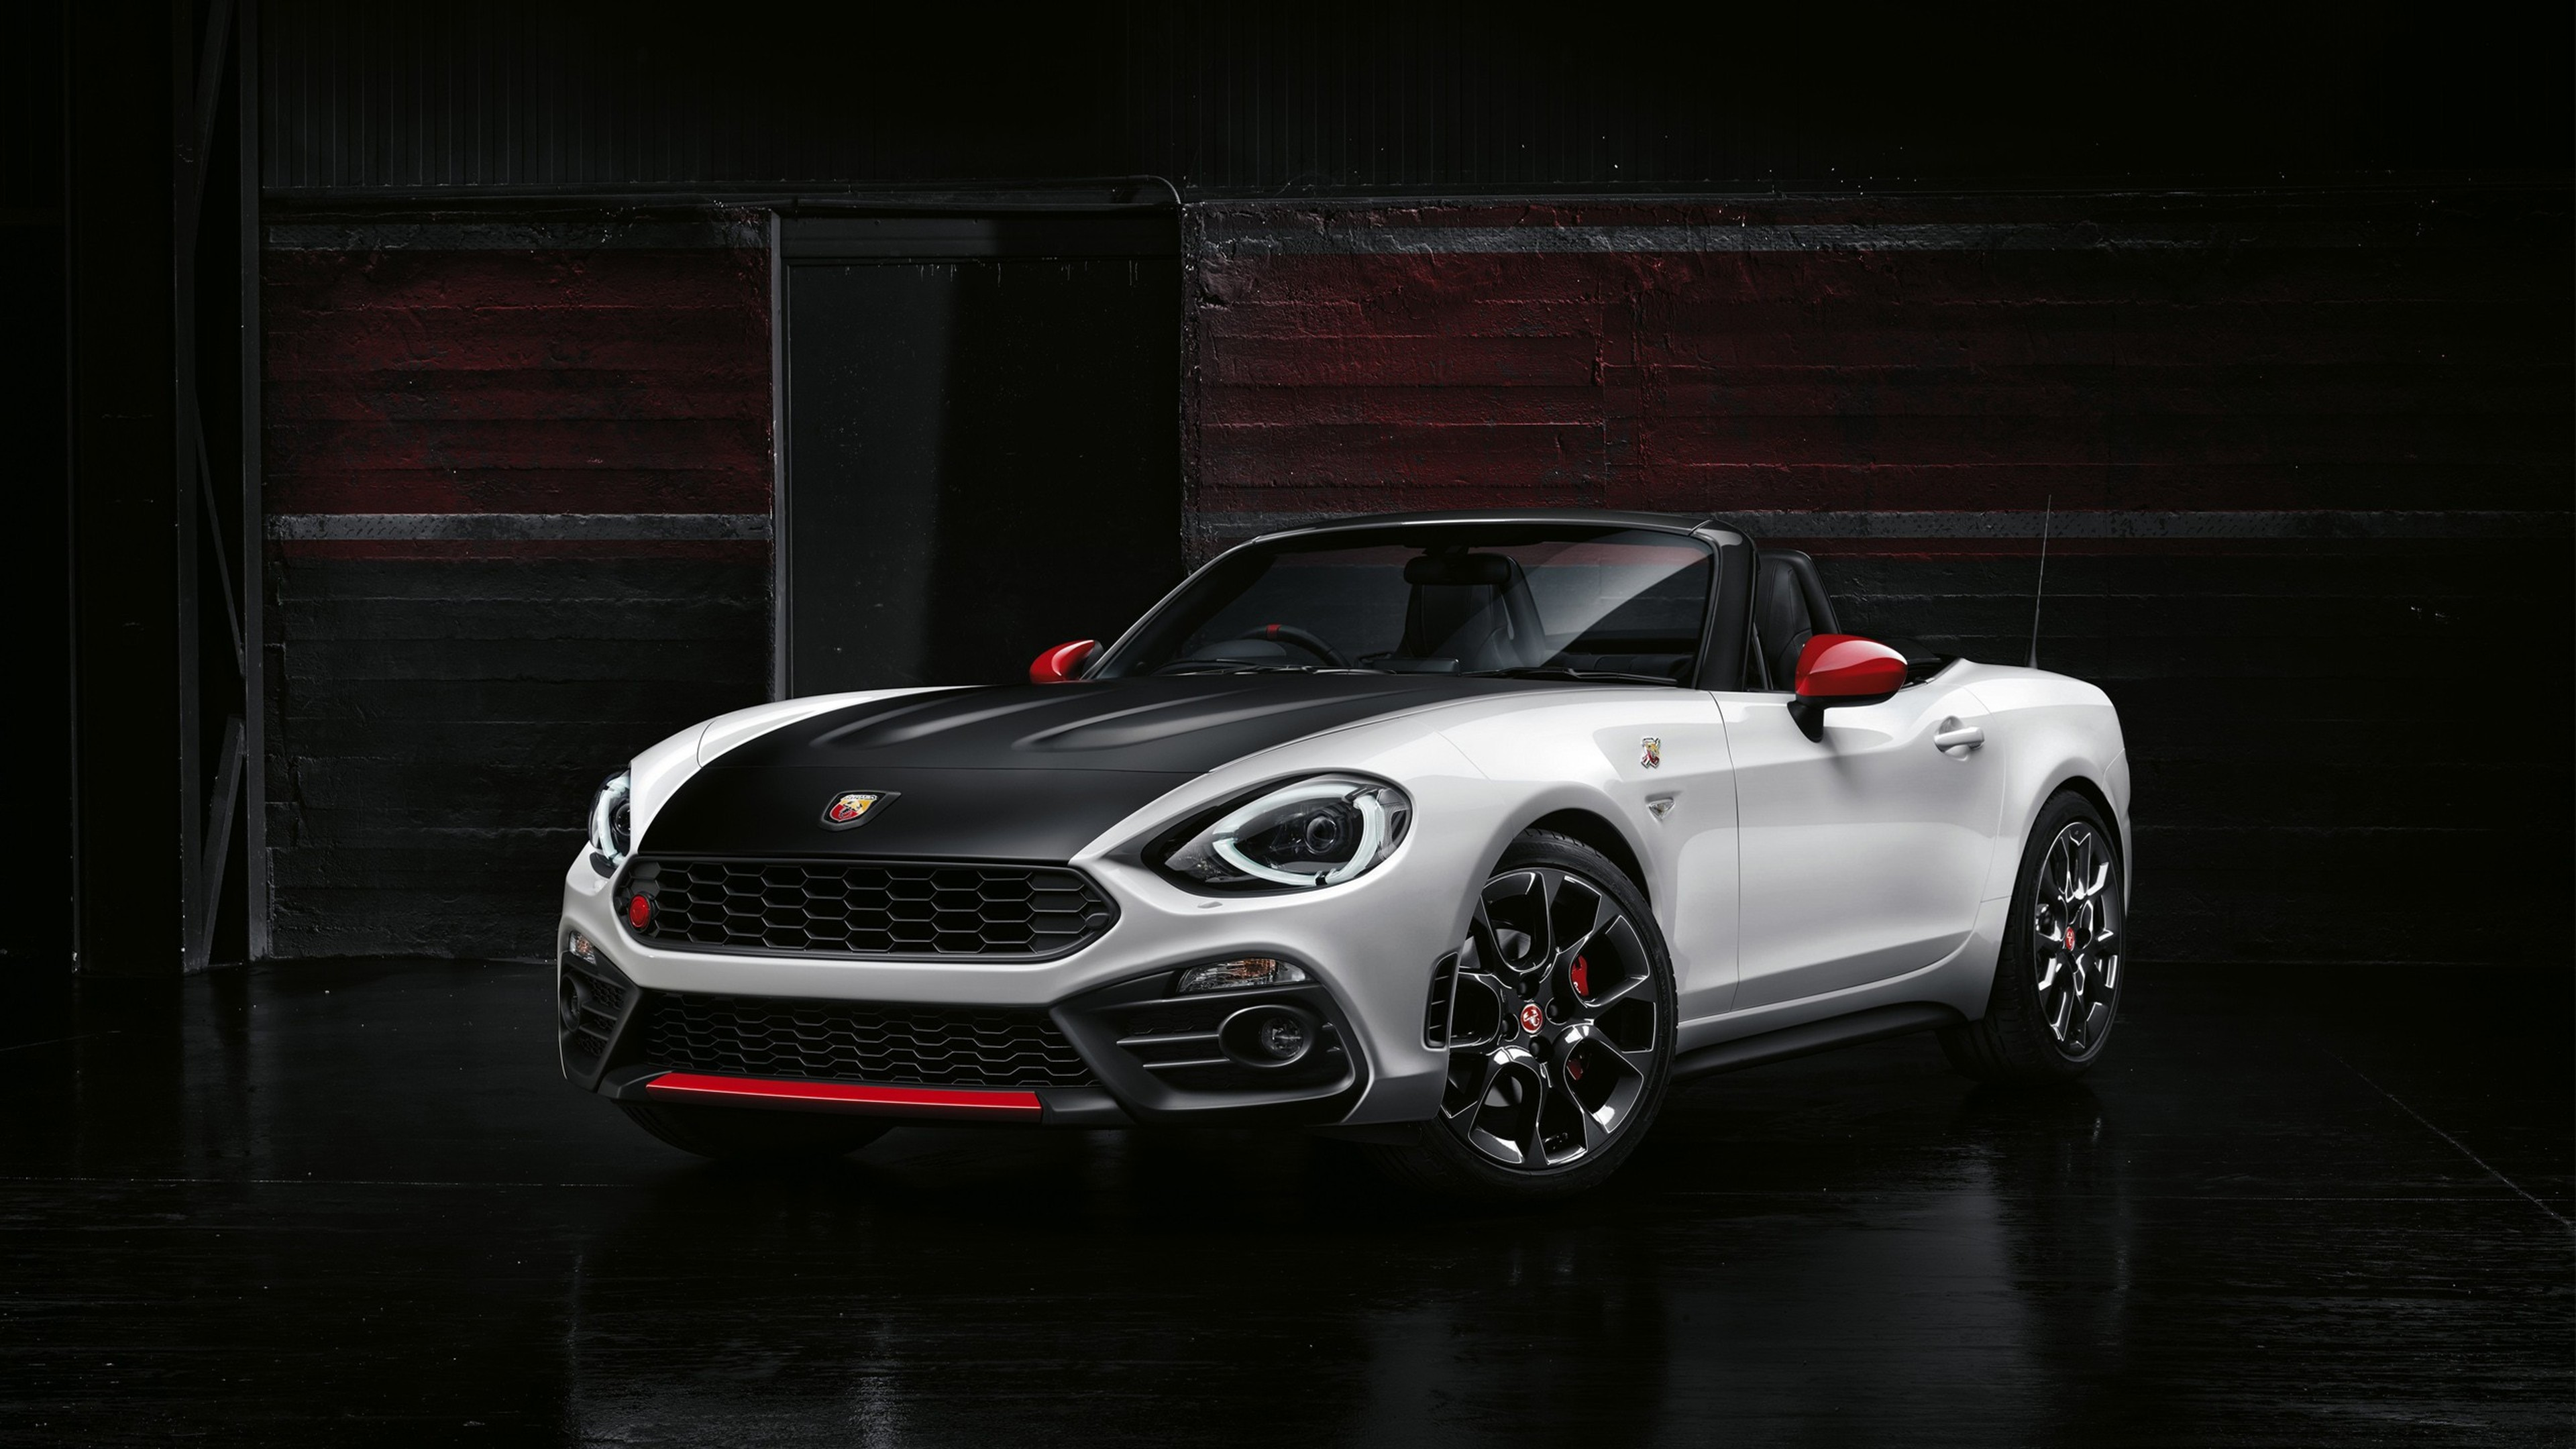 Fiat Spider Abarth, HD Cars, 4k Wallpapers, Images, Backgrounds, Photos and Pictures